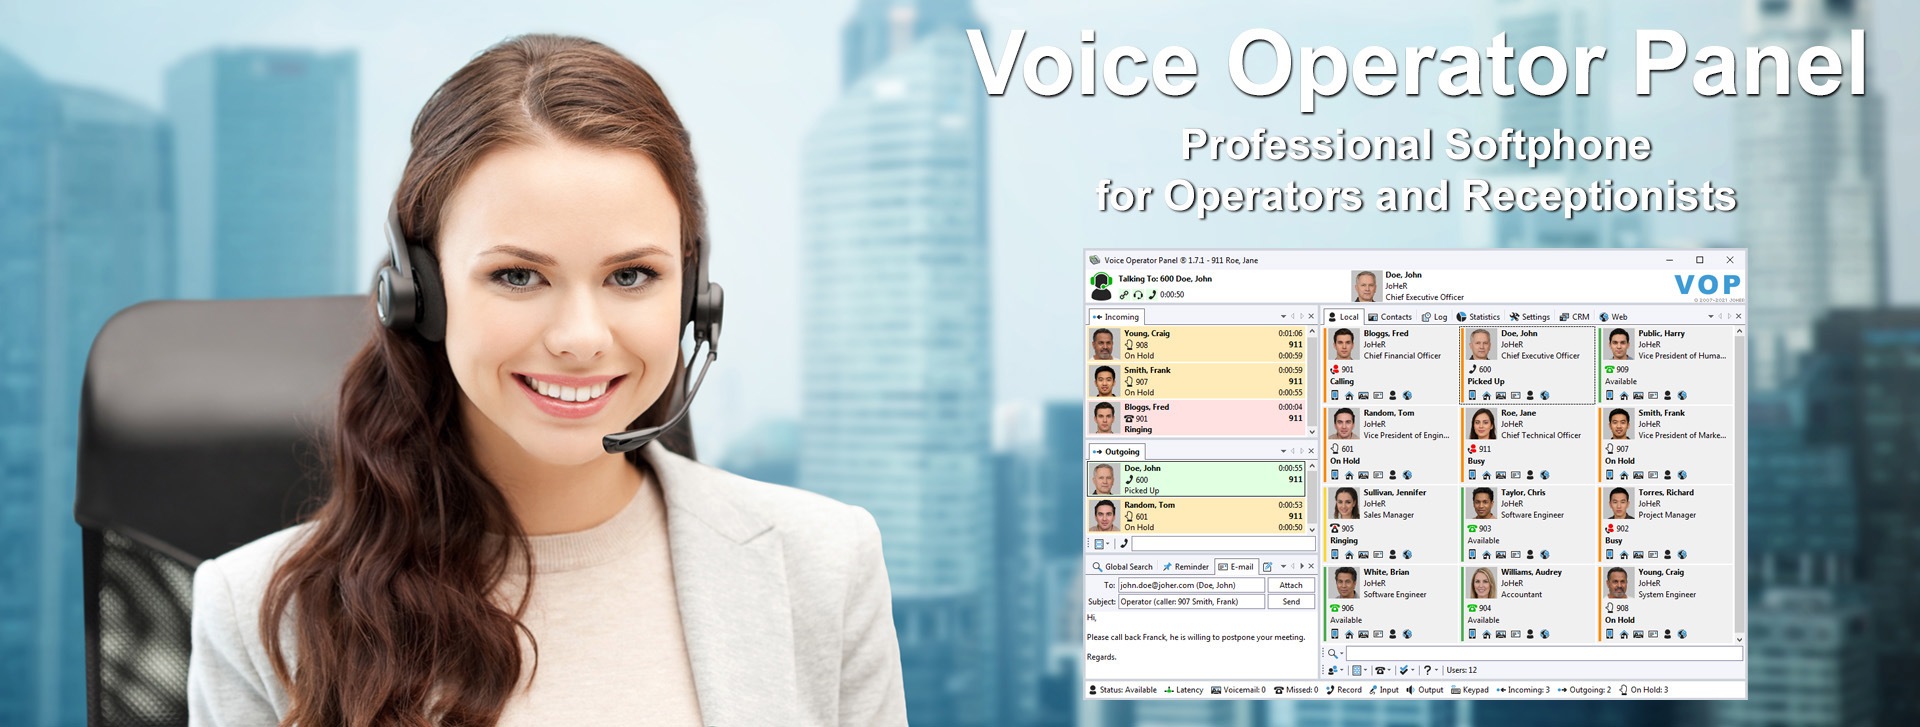 voice operator panel professional sip softphone for operators voice operator panel professional softphone for operators and receptionists